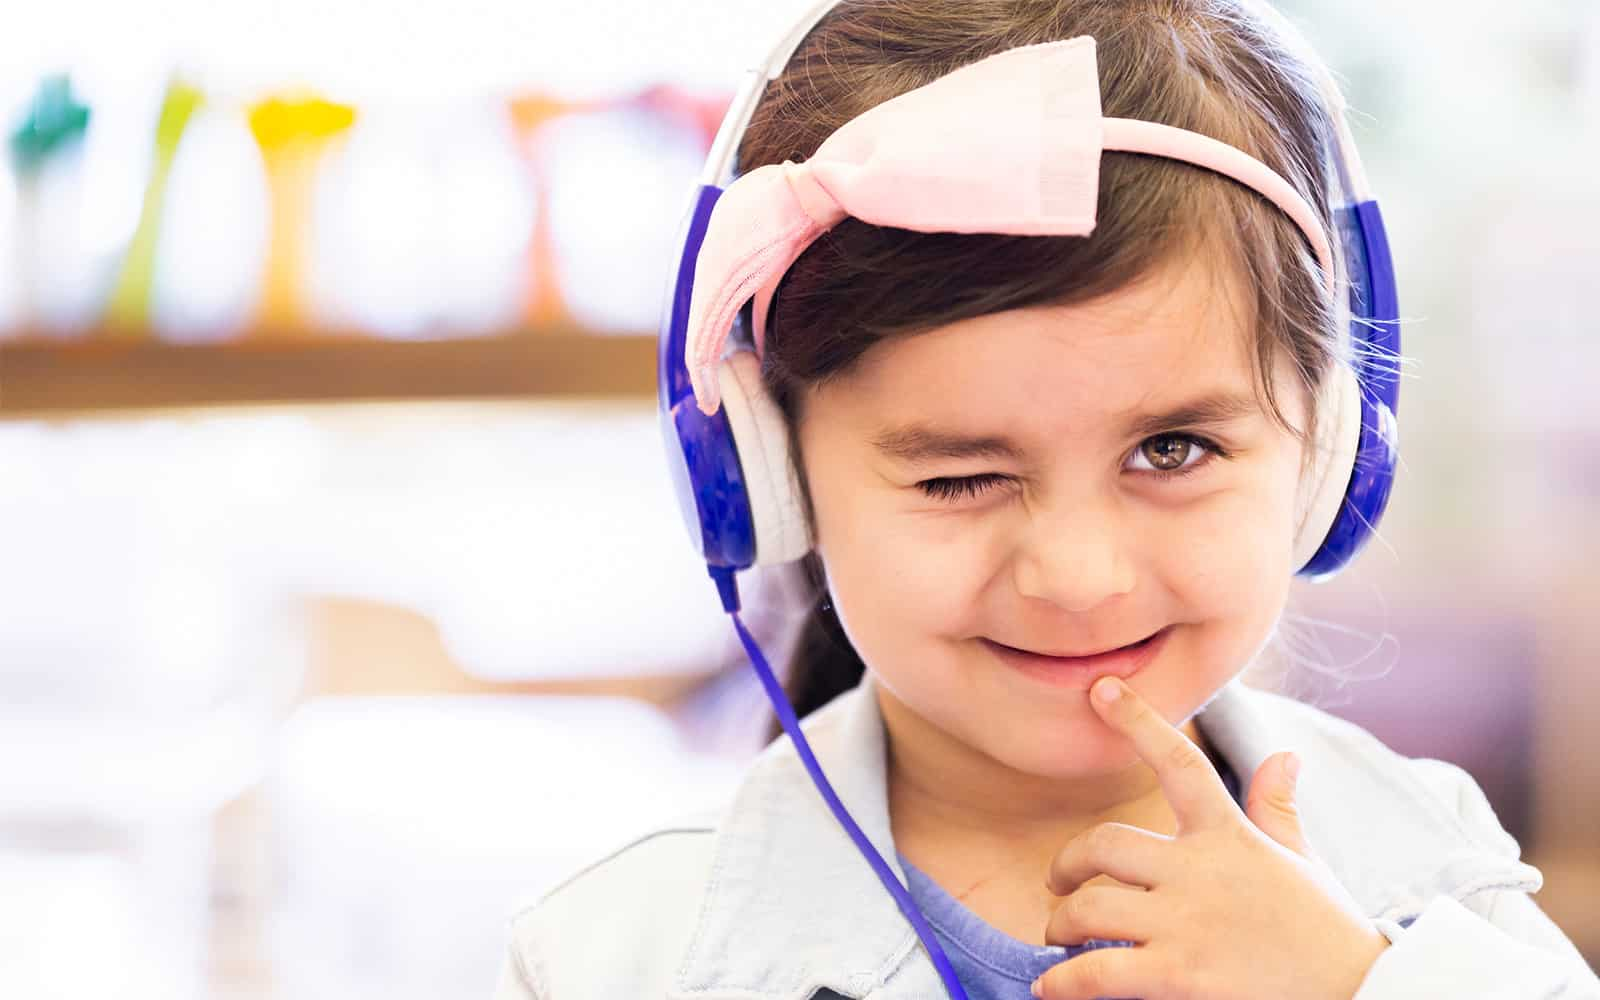 Child wearing headset winking at the camera